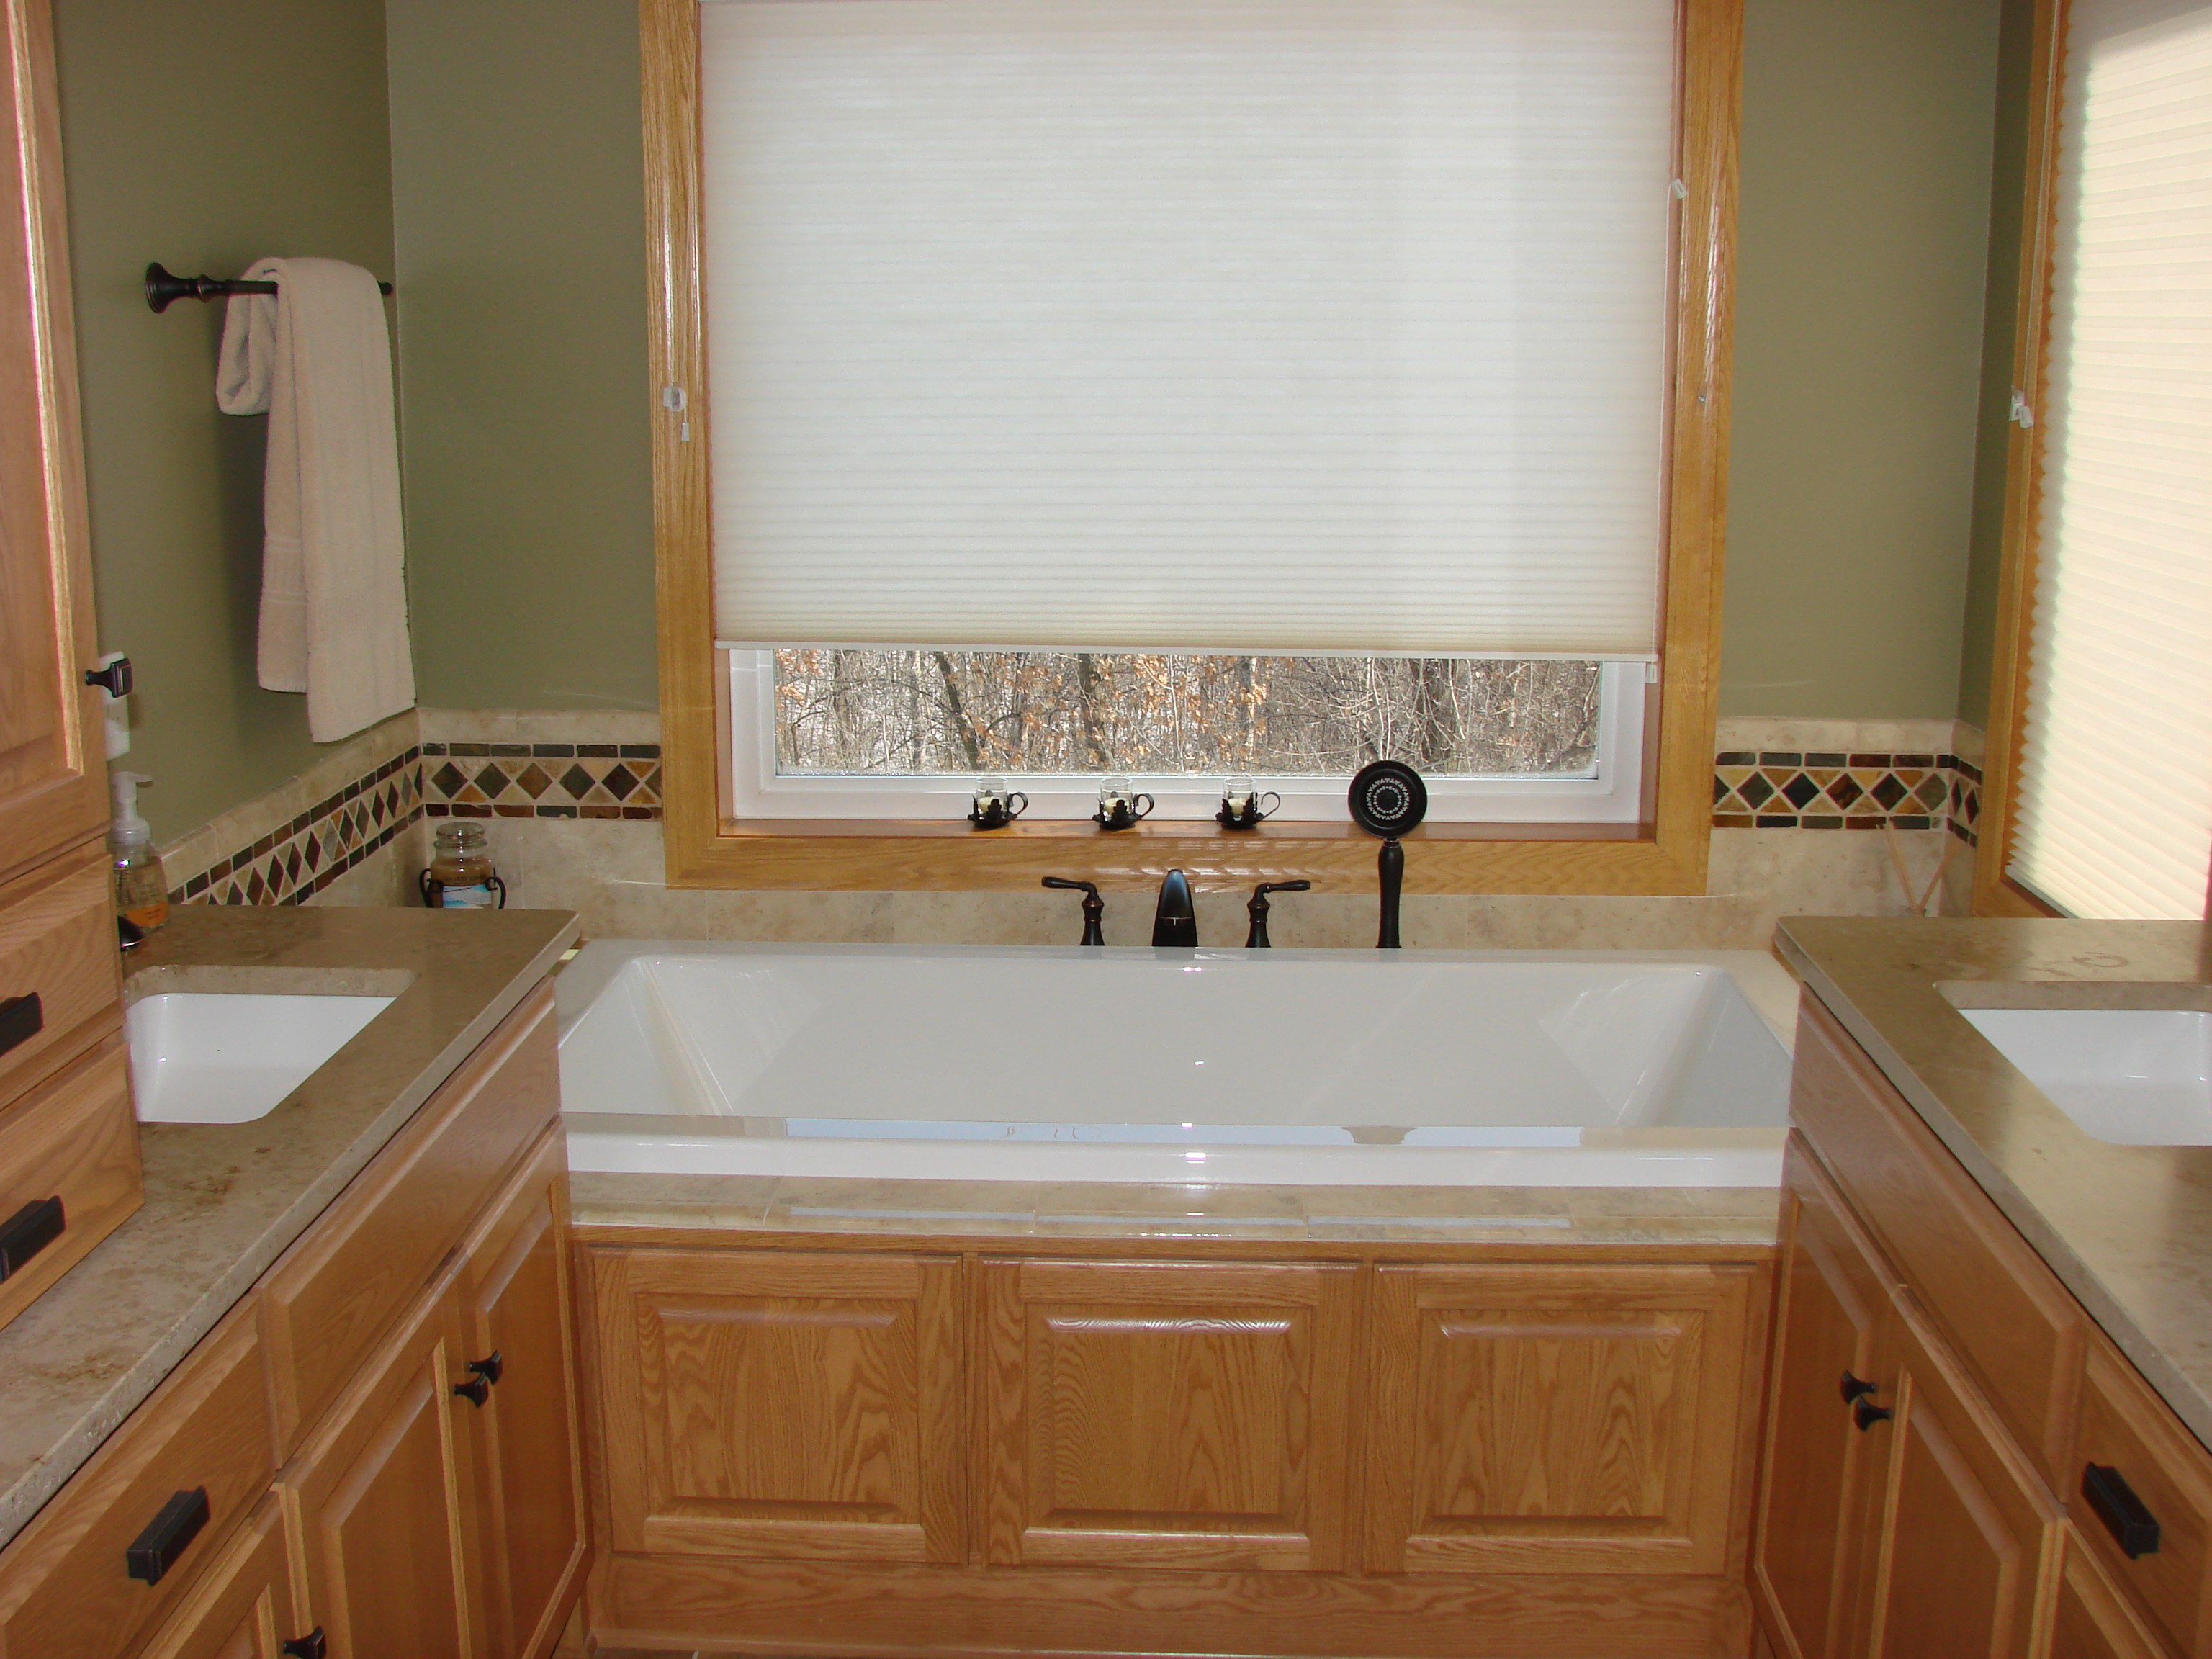 Bathroom remodeling roberts residential remodeling for Residential bathroom remodeling